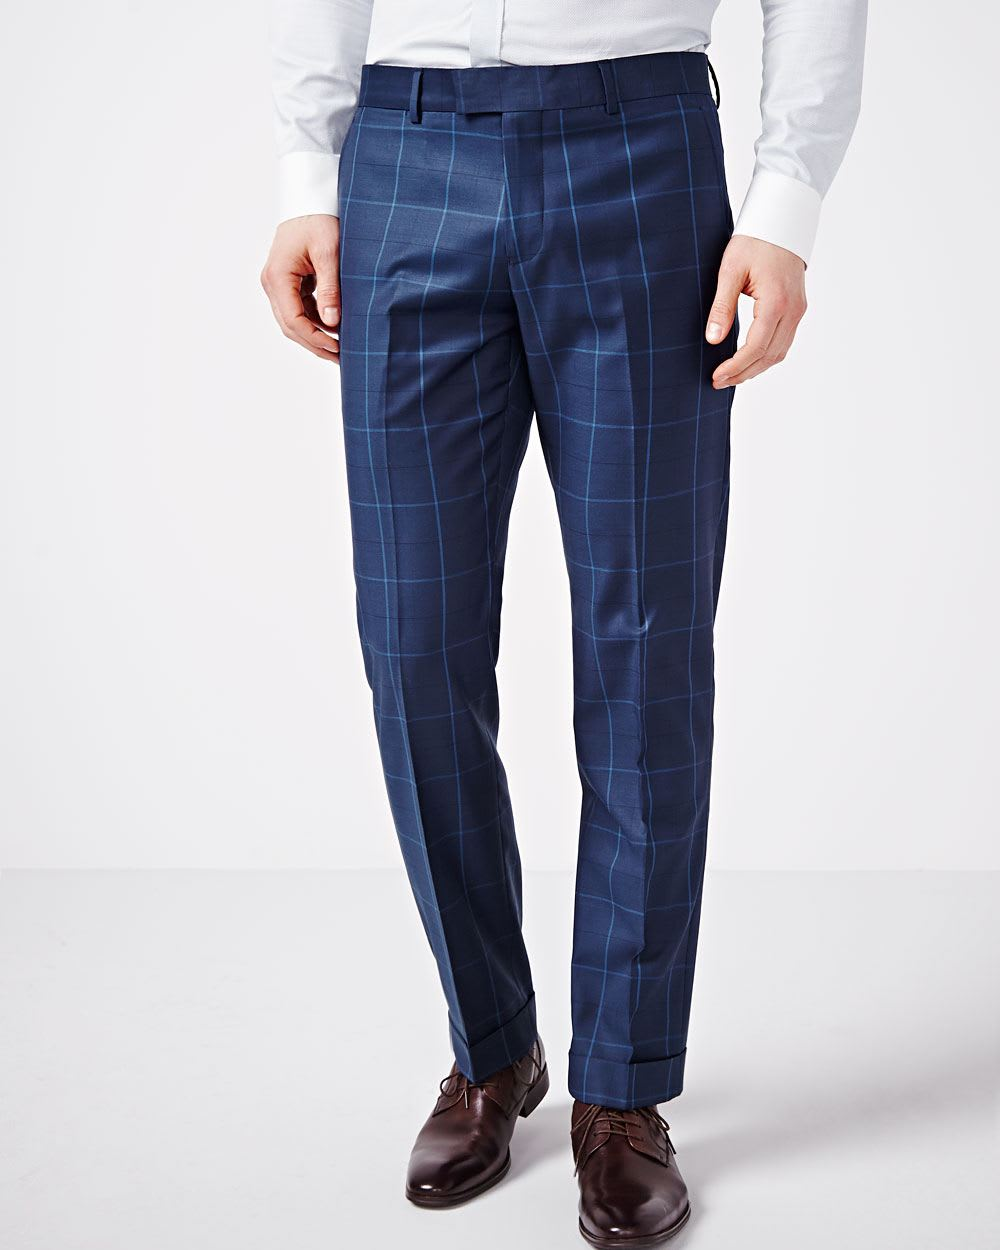 Windowpane Trousers Men Pants ($ - $): 30 of items - Shop Windowpane Trousers Men Pants from ALL your favorite stores & find HUGE SAVINGS up to 80% off Windowpane Trousers Men Pants, including GREAT DEALS like UNIQLO Men's Ezy Ankle-length Pants (Windowpane), Blue, M .